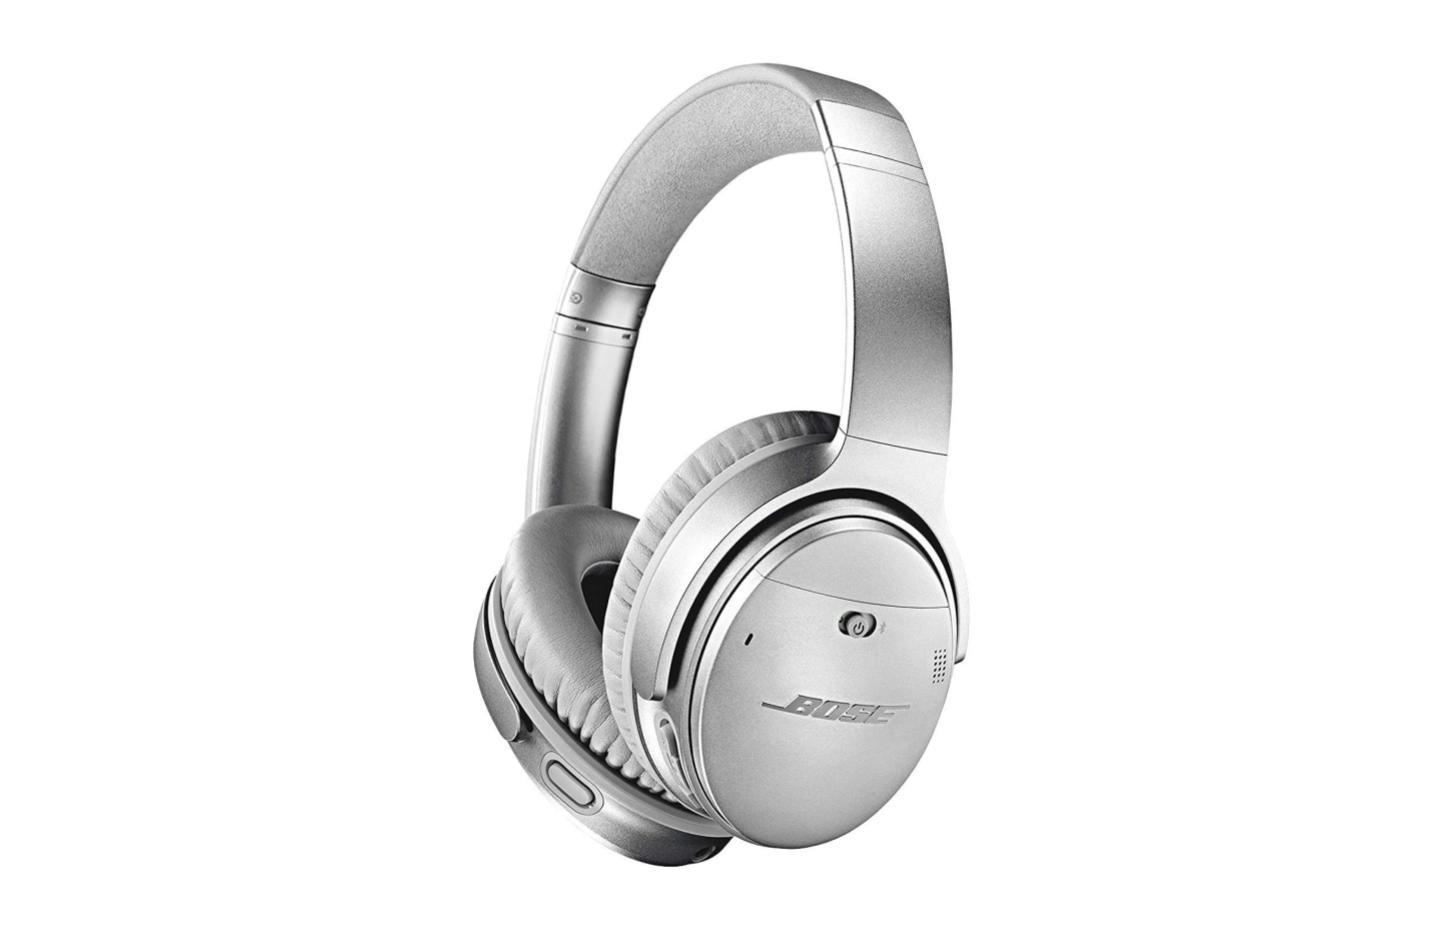 Le Bose QC 35 II tombe à son prix le plus bas sur Amazon